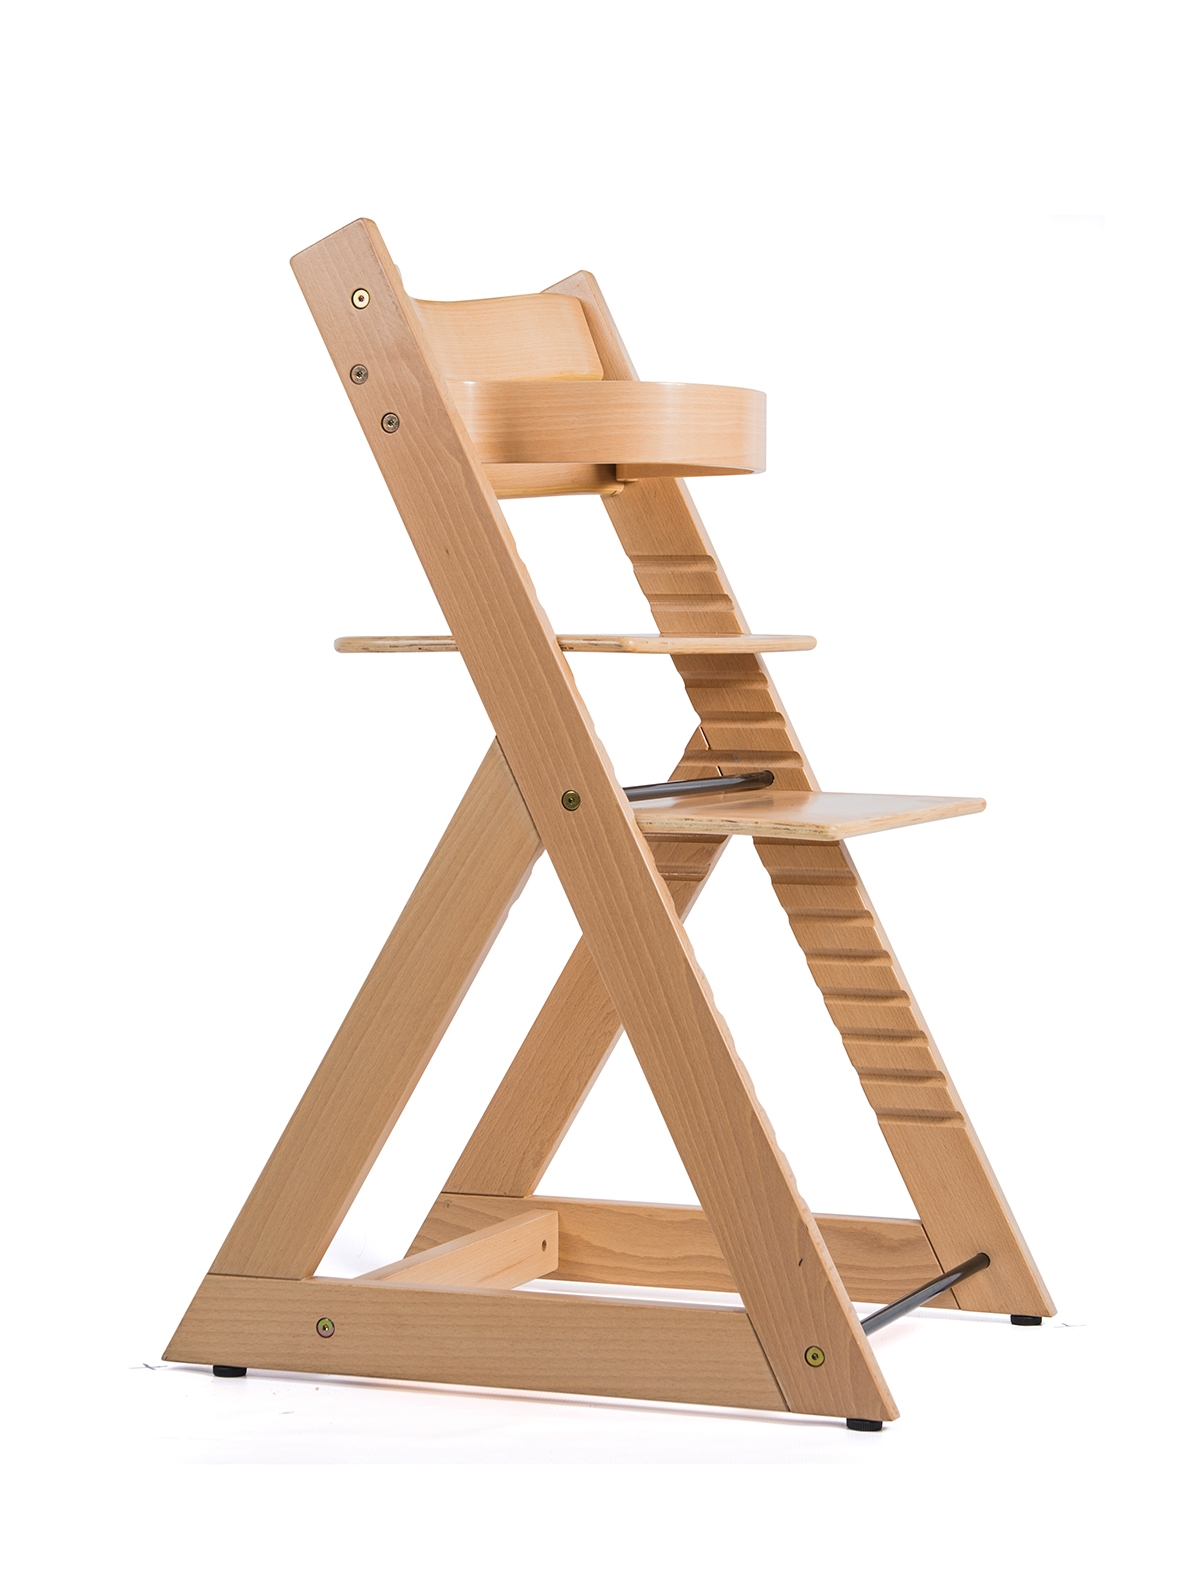 Toddler Chair - Natural Stain